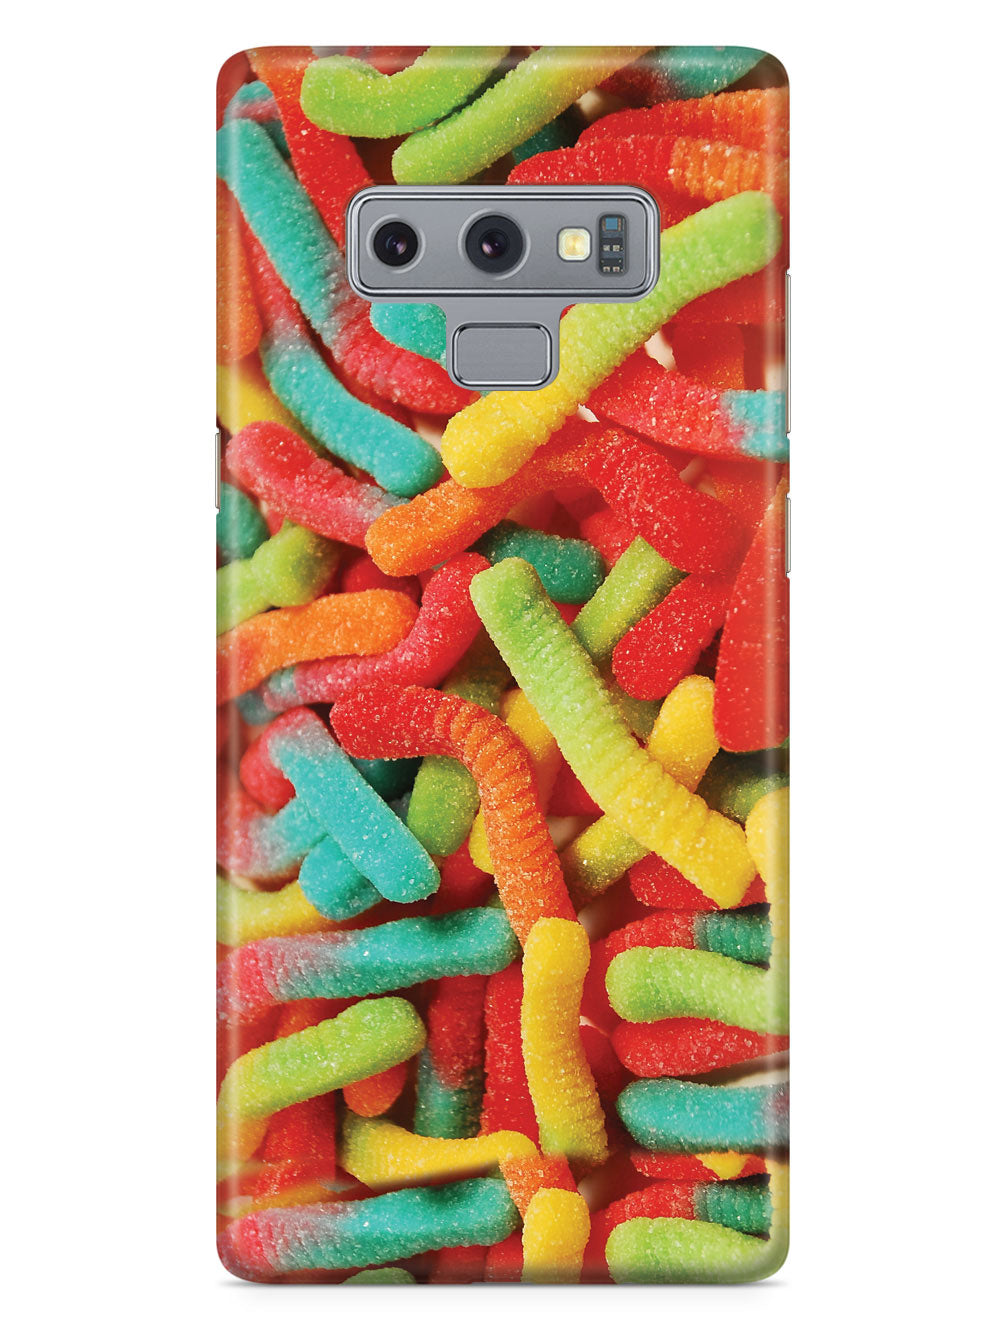 Gummy Worms Case